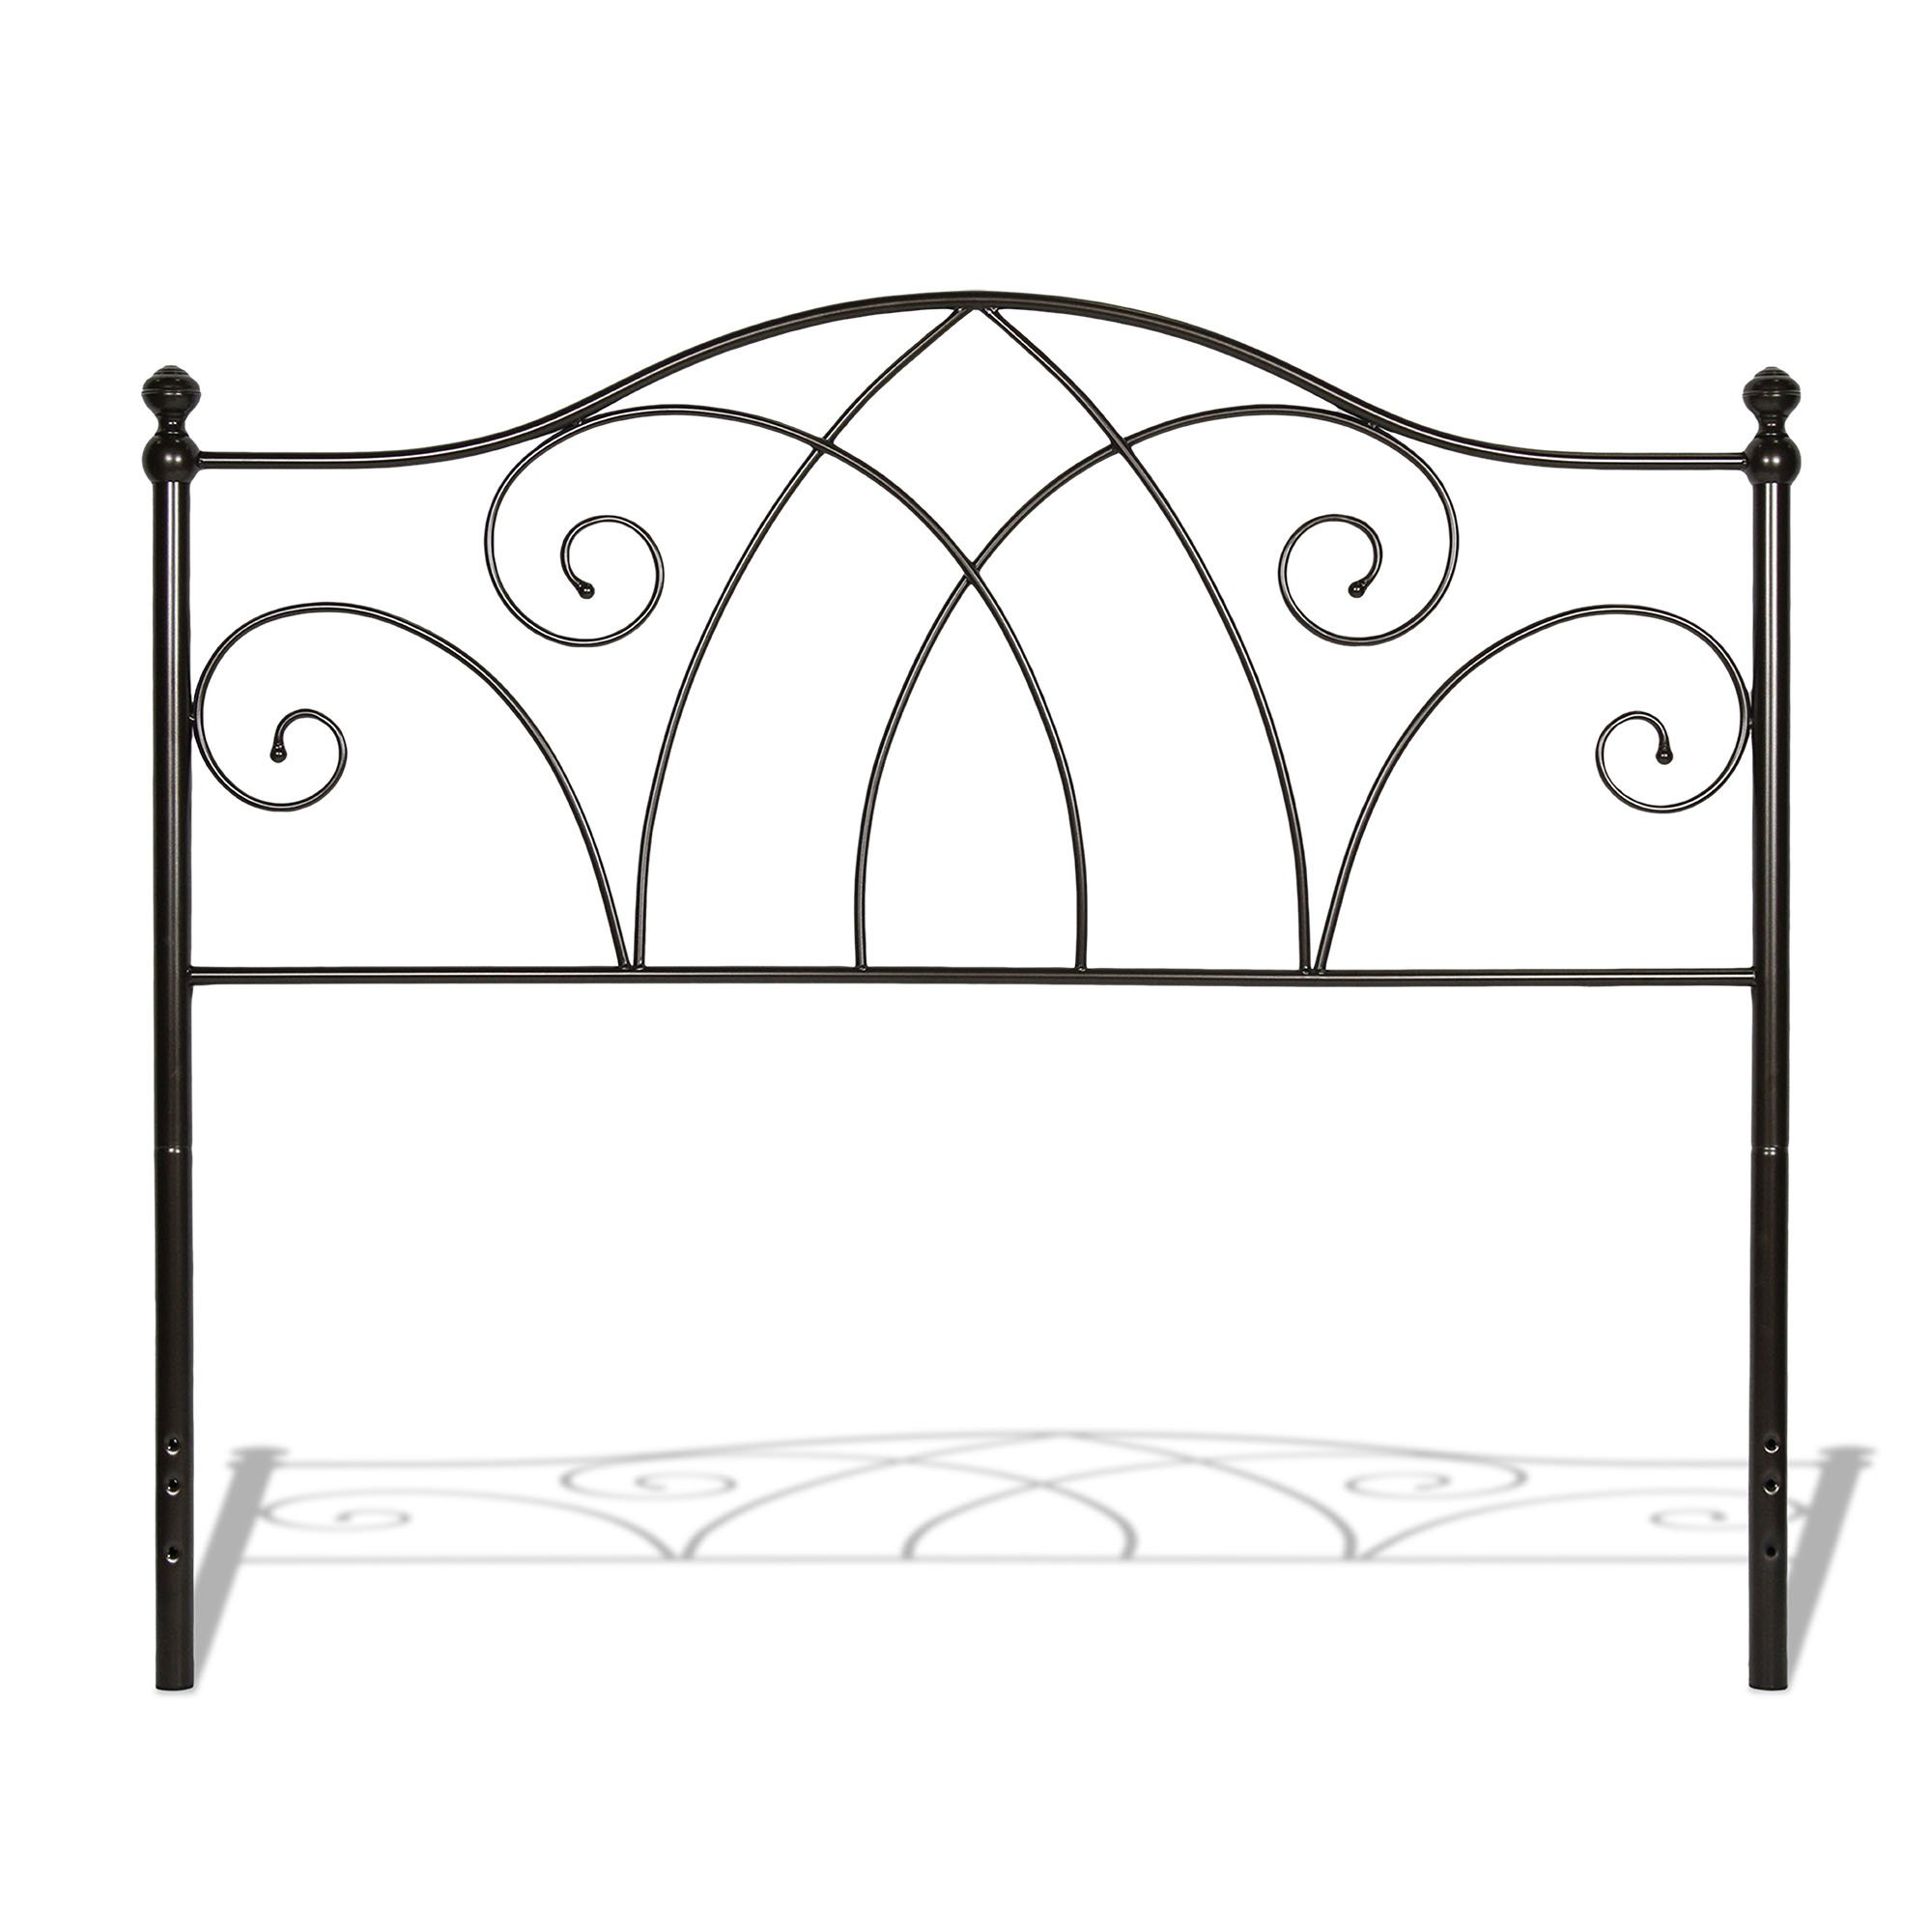 photos of platform headboards fancy antique double metal clubanfi costco frame white large wrought rod beds single bed bedroom full iron headboard king luxury sleigh size vintage queen frames